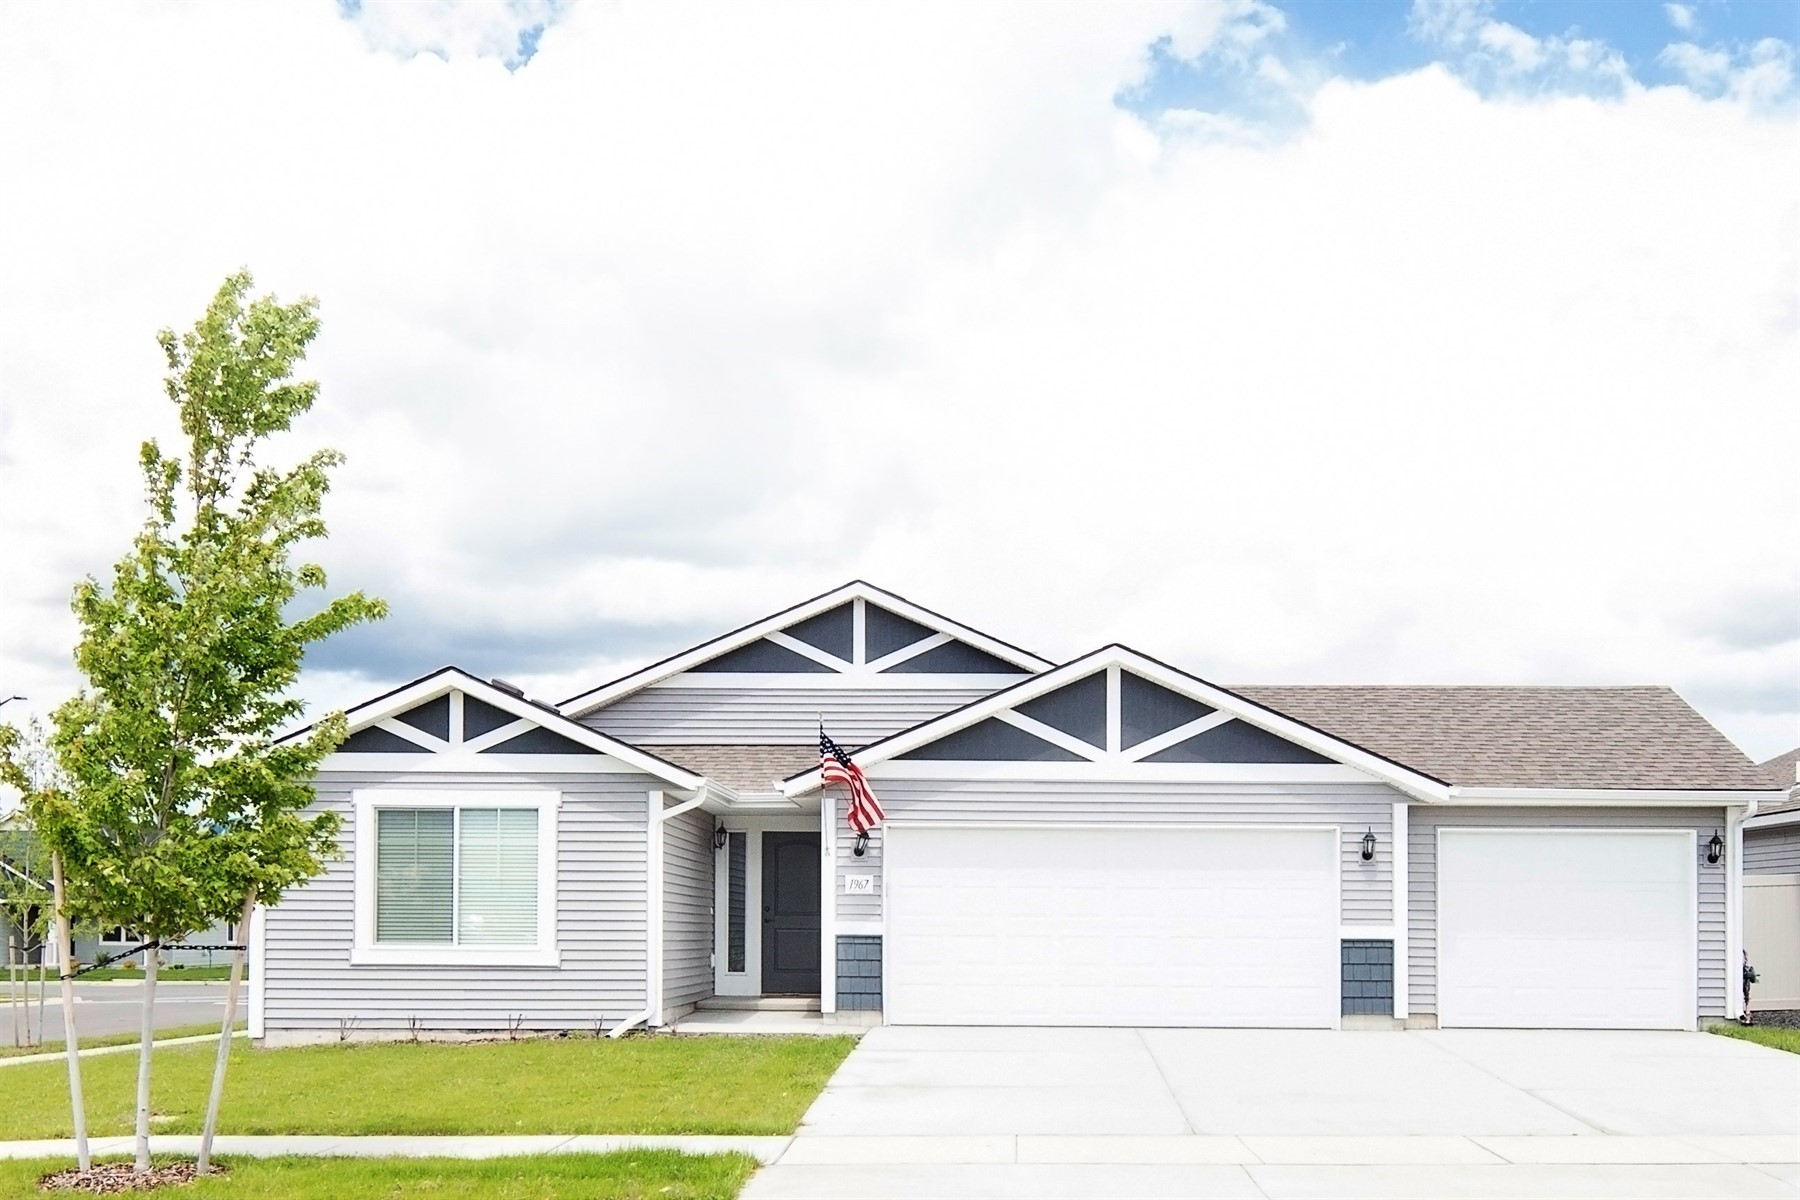 Single Family Homes for Sale at Beautiful Carolina Floor Plan in Montrose 1967 W Calawah Ave Post Falls, Idaho 83854 United States